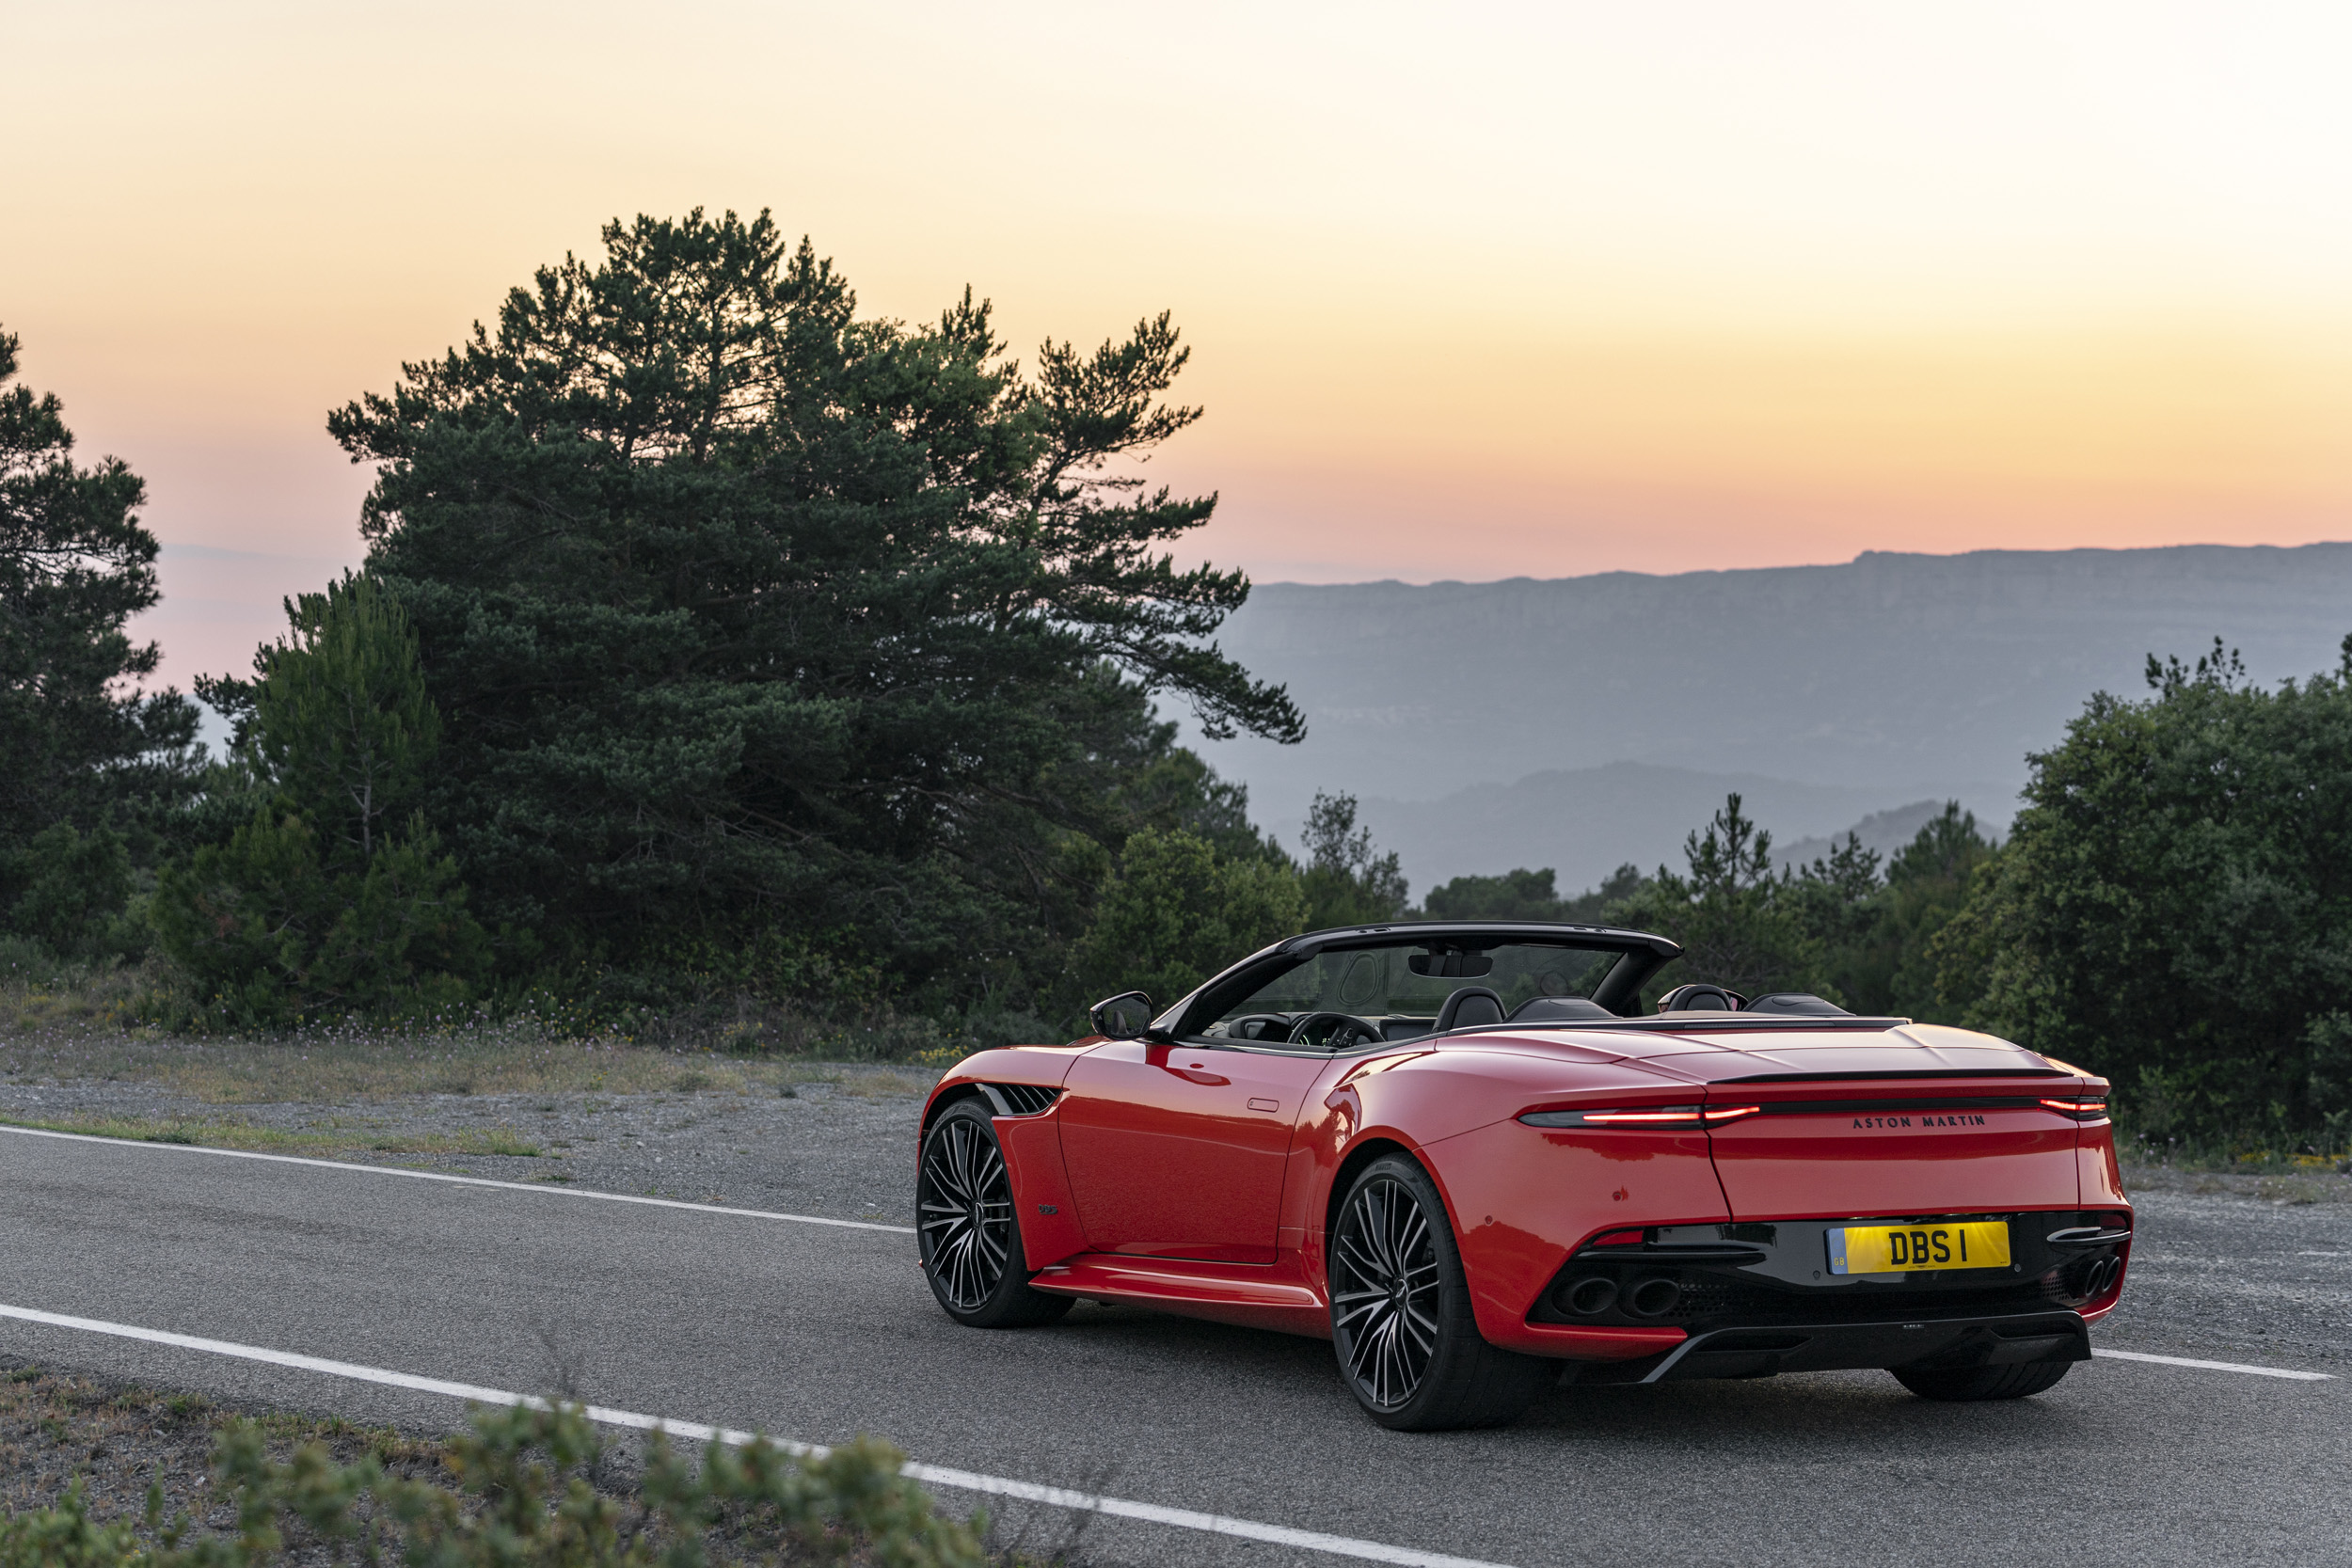 Aston Martin DBS Superleggera Volante - Sportscar of the Year [2]